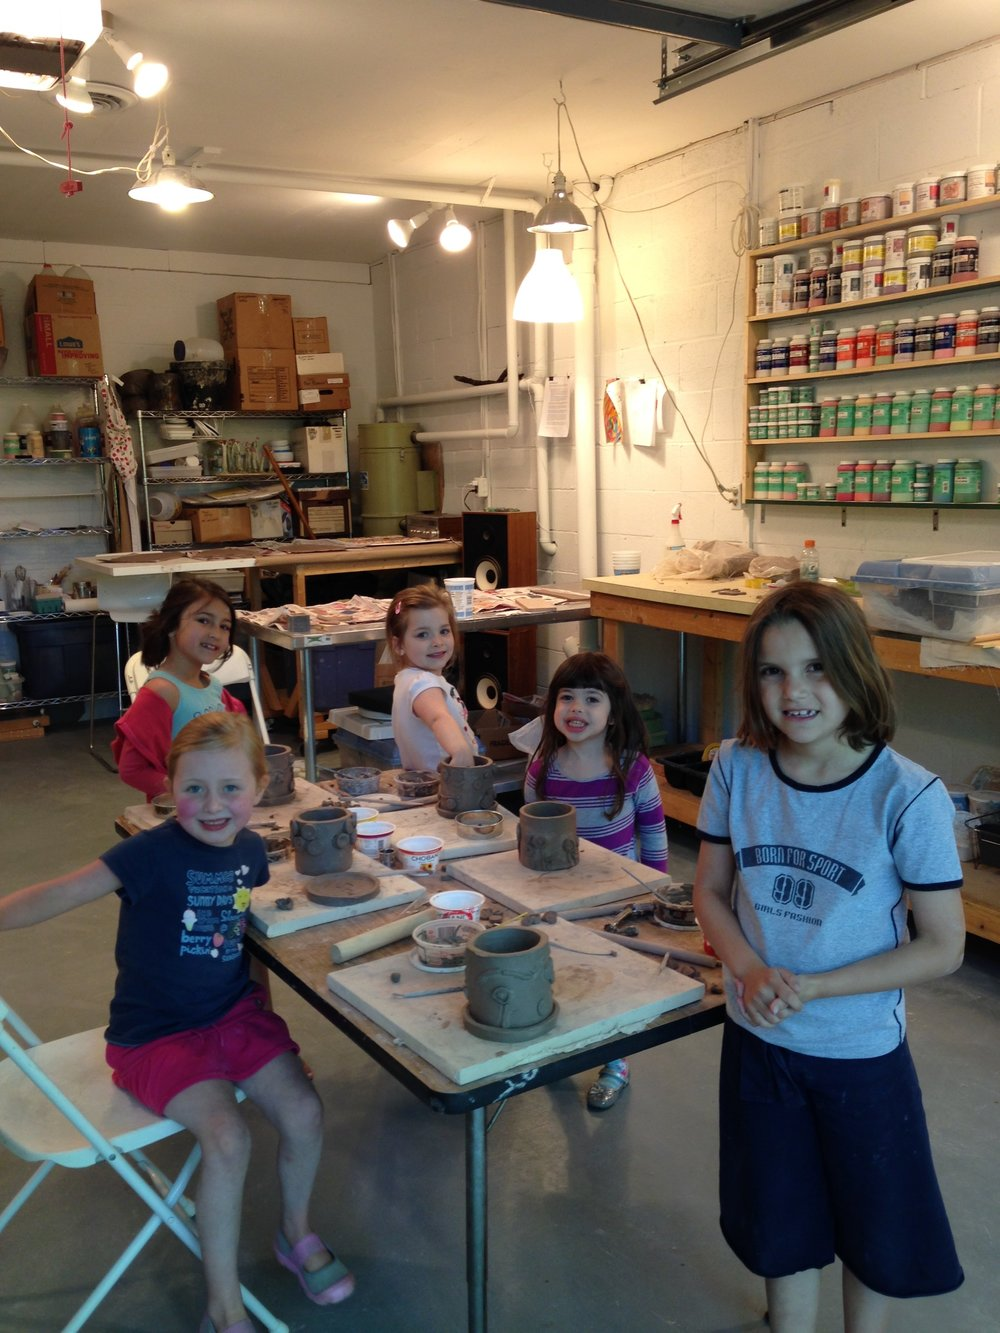 Humble beginnings. Nina with clay camp friends.